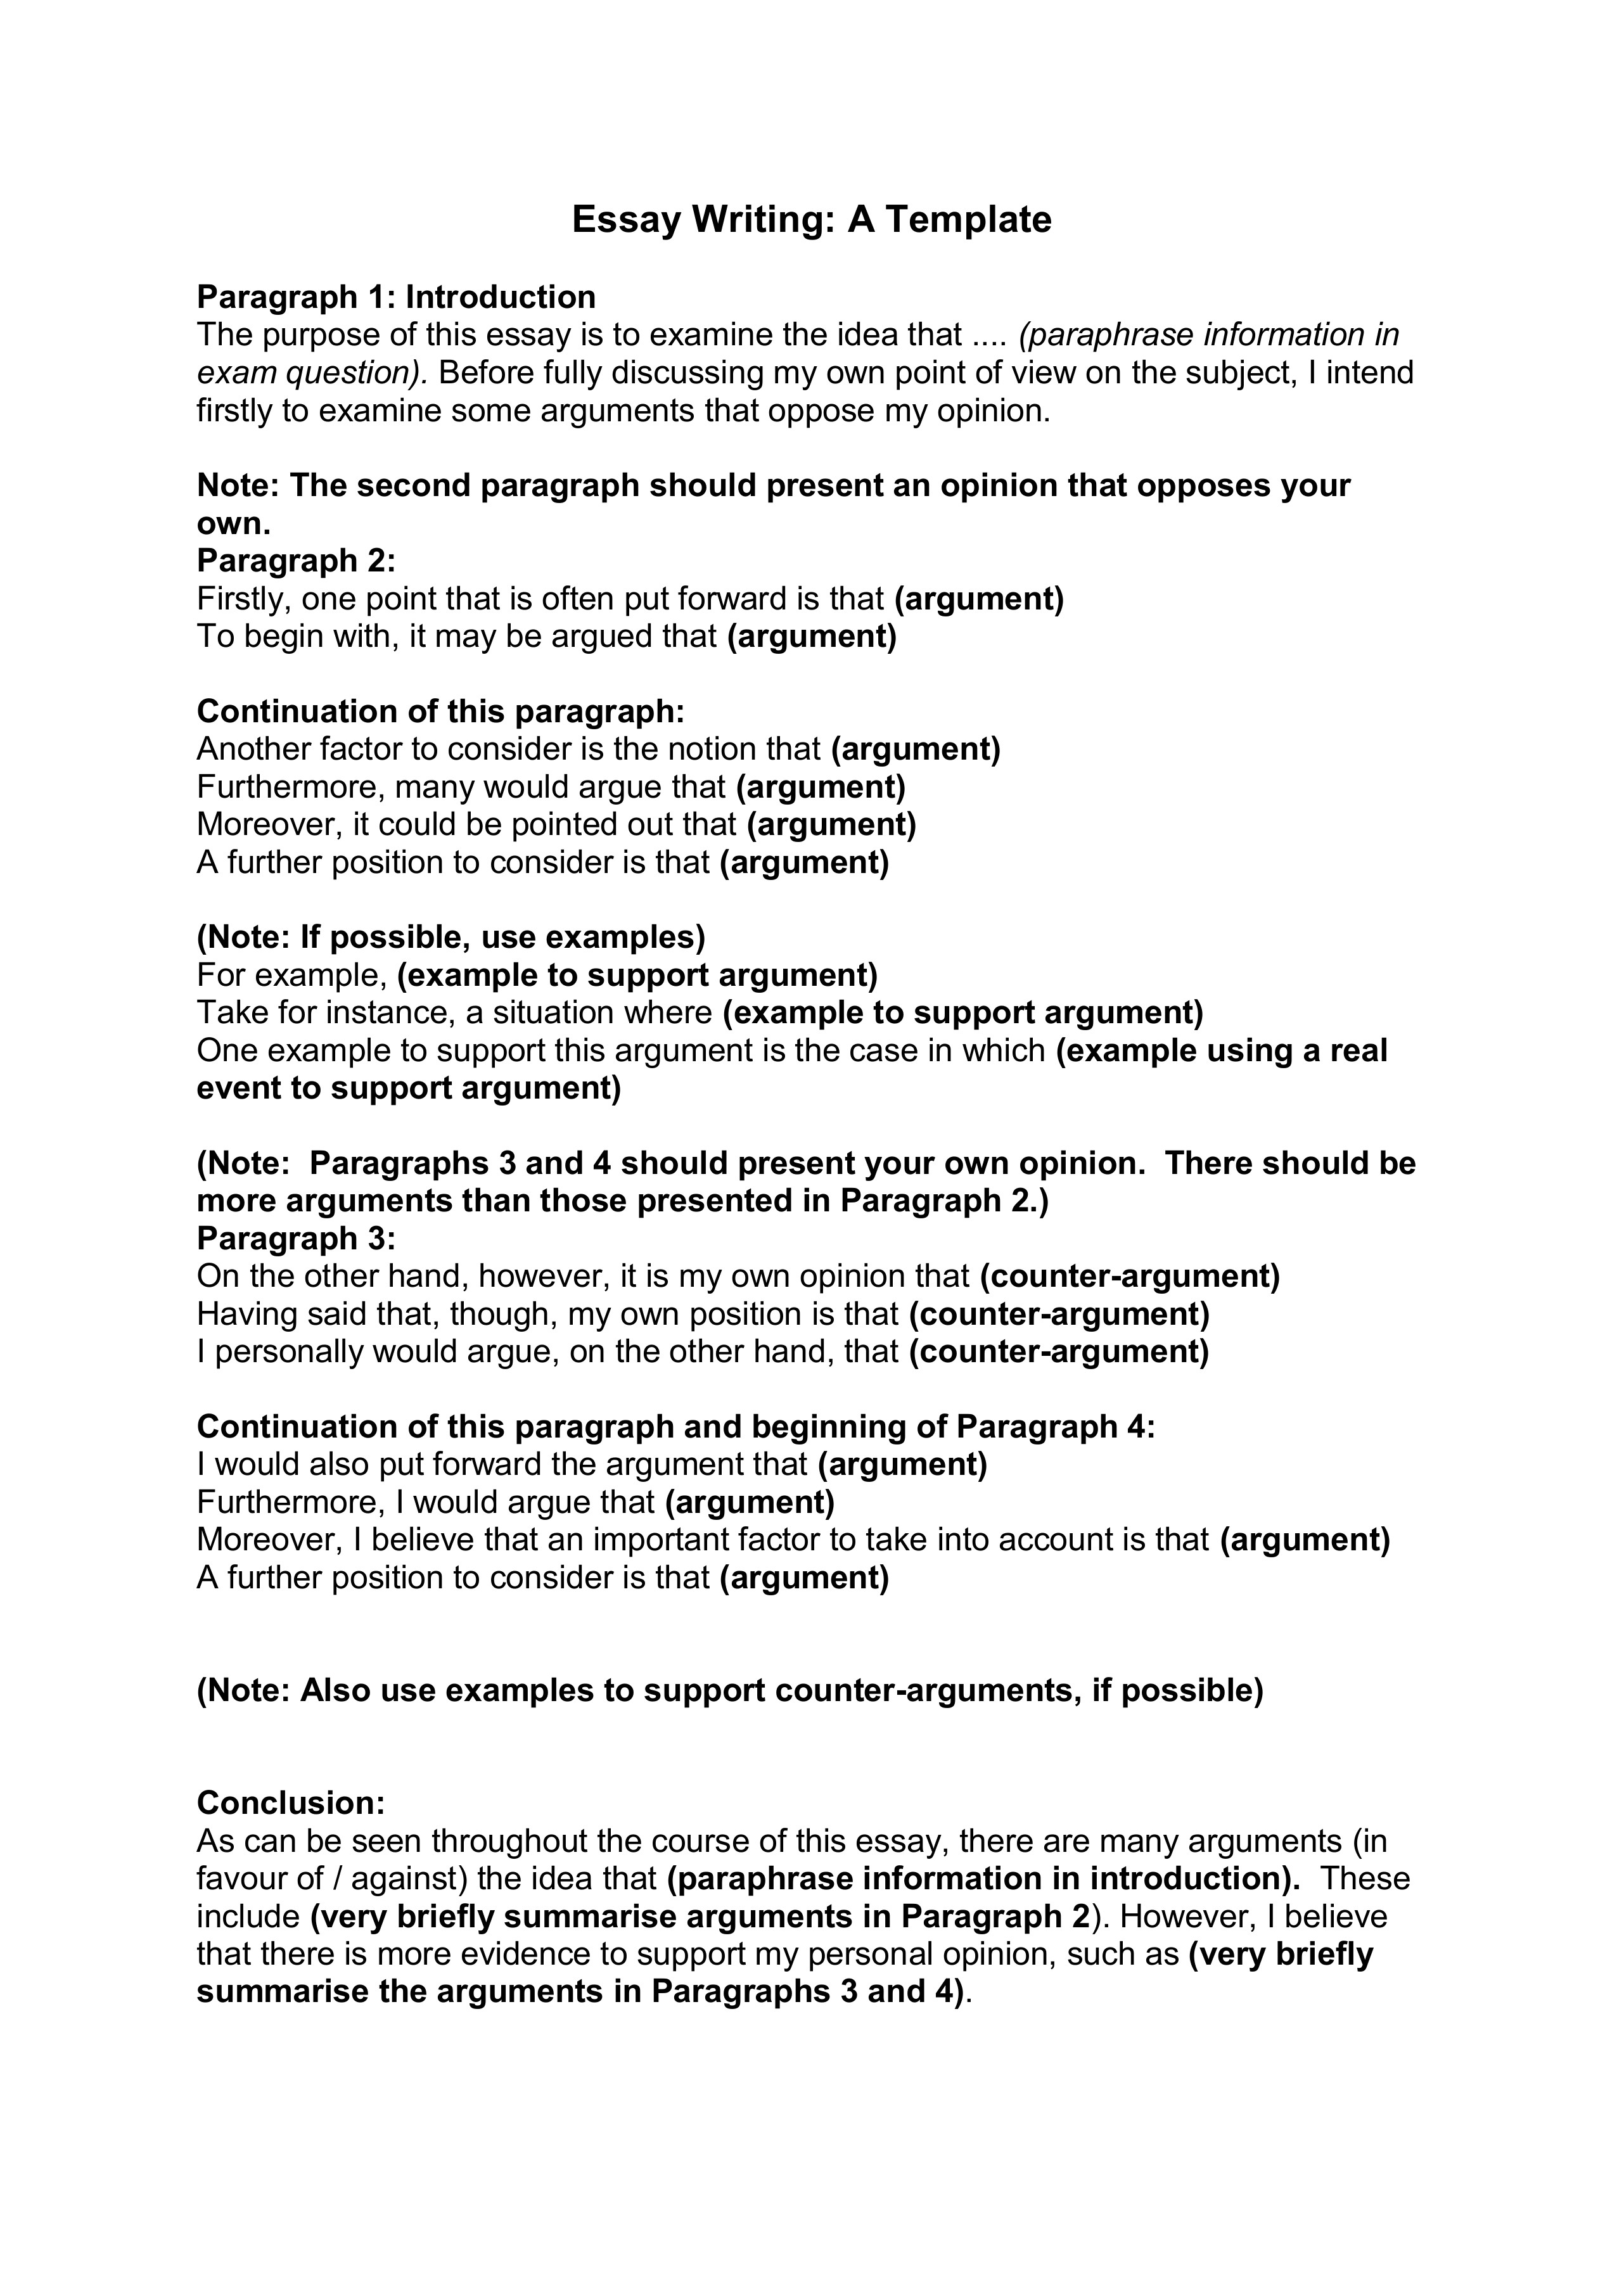 015 Essay Writing Template For Part 2cbu003d Research Paper Order Of Wonderful A Reviews Making Full